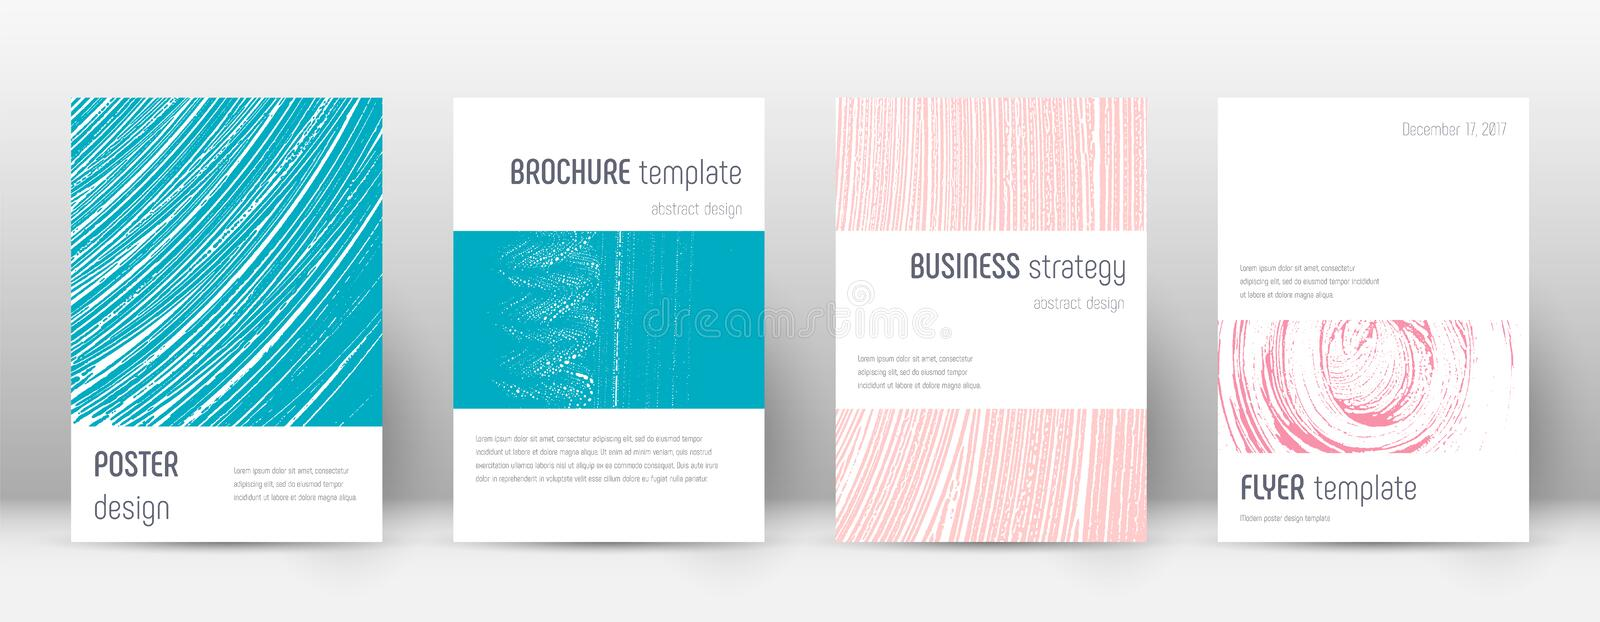 Cover page design template. Minimalistic brochure. Layout. Classy trendy abstract cover page. Pink and blue grunge texture background. Precious poster vector illustration